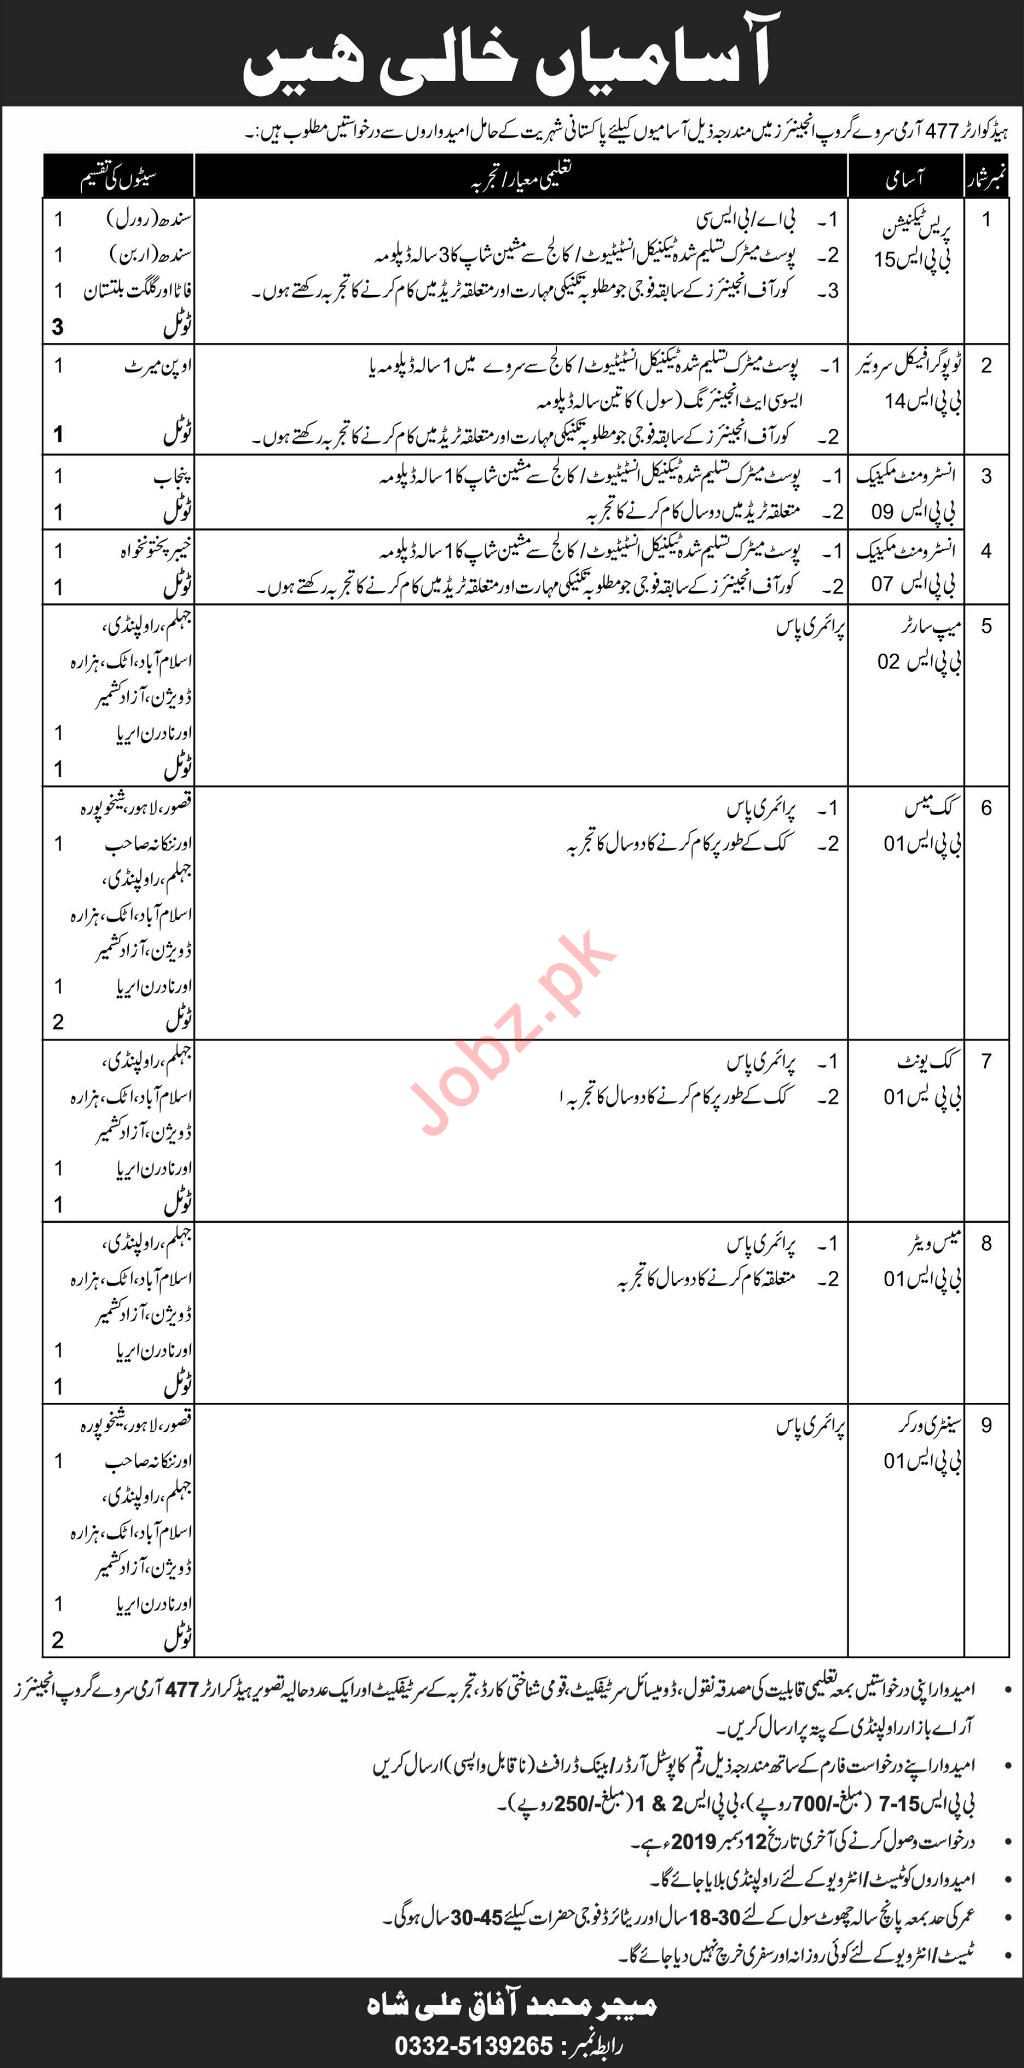 Headquarter 477 Army Survey Group Engineers Jobs 2019